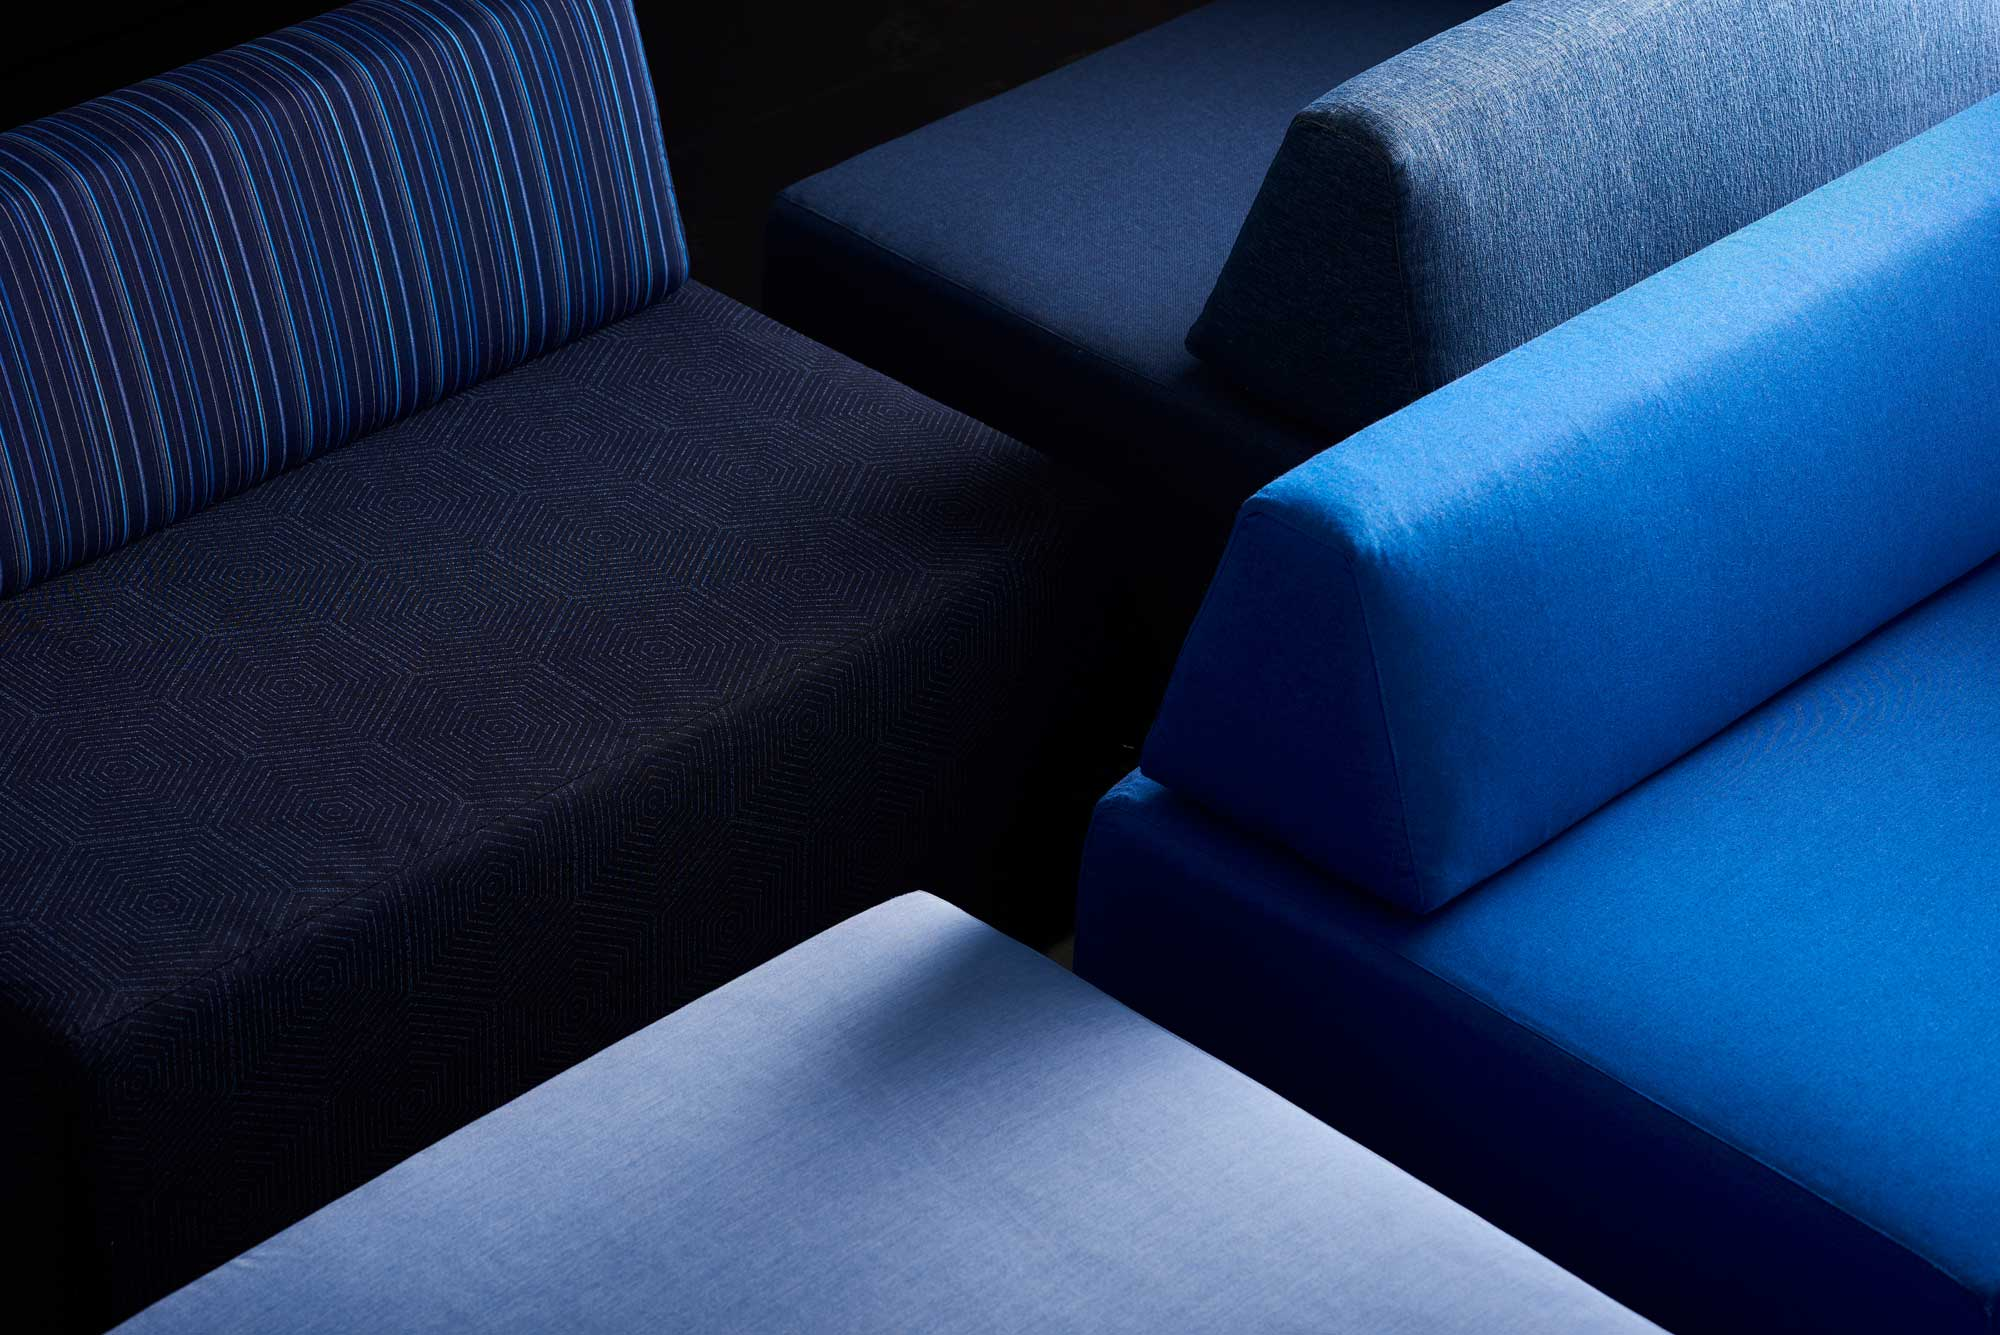 Detail shot of square ottomans and bolster pillows in a blue palette of Sunbrella performance fabrics from the Sunbrella Pure Collection.